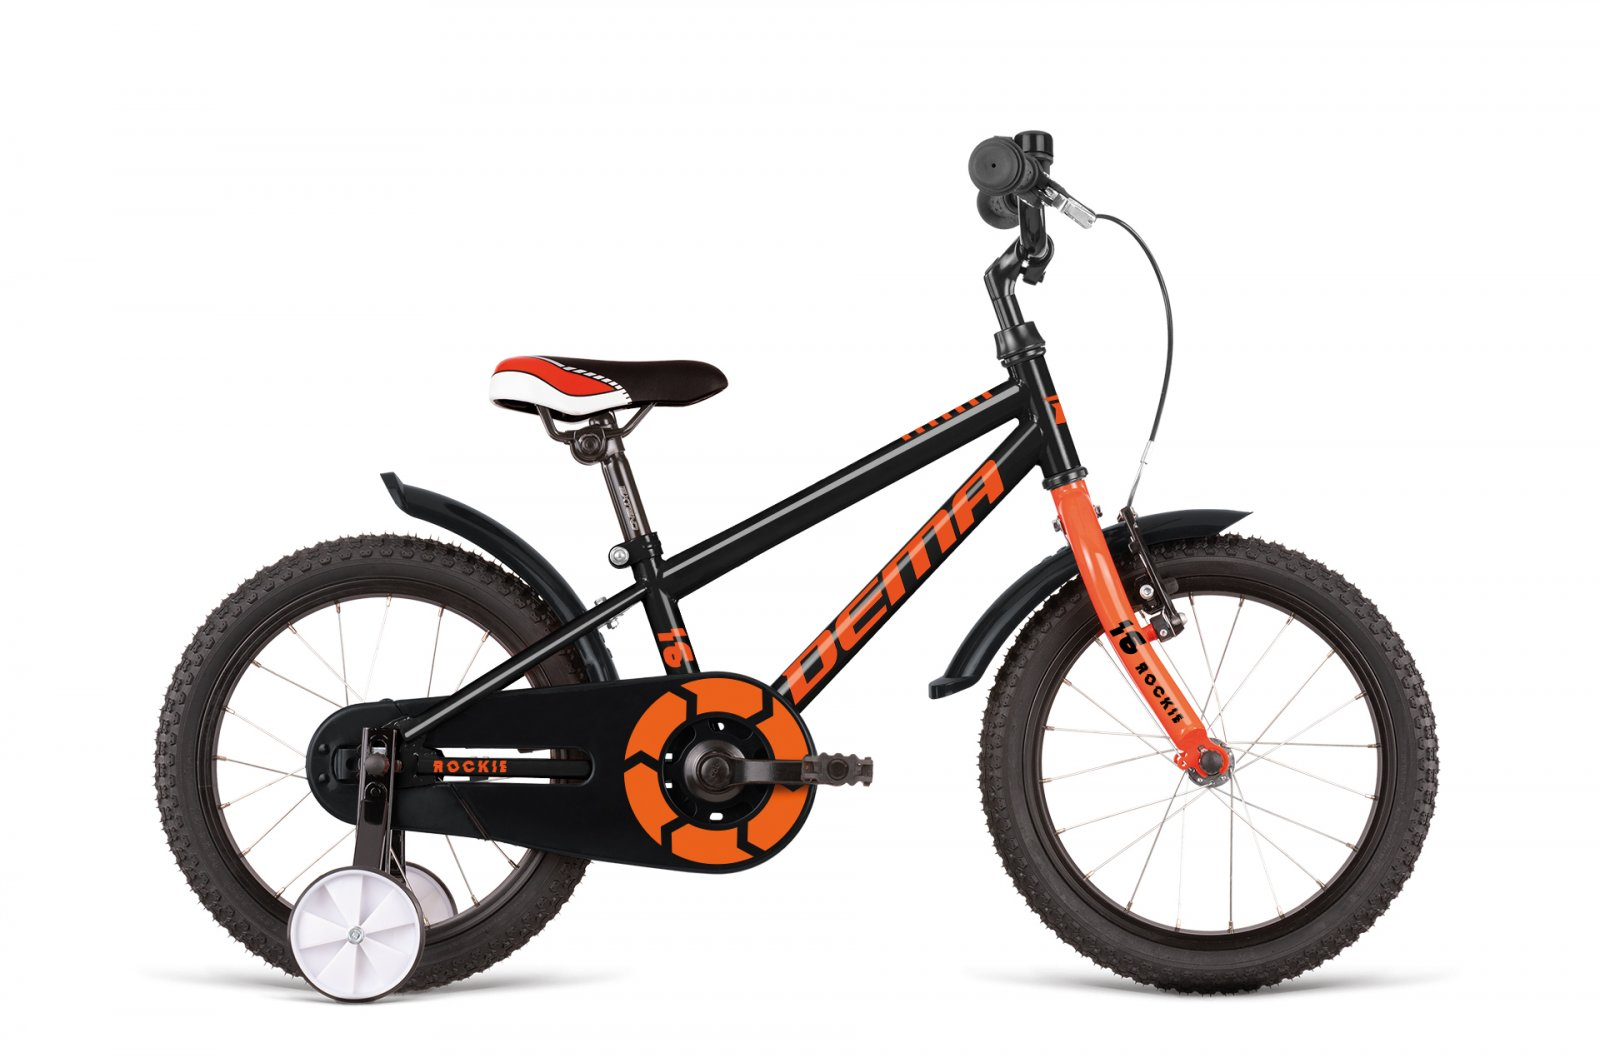 Dema ROCKIE 16 black/orange